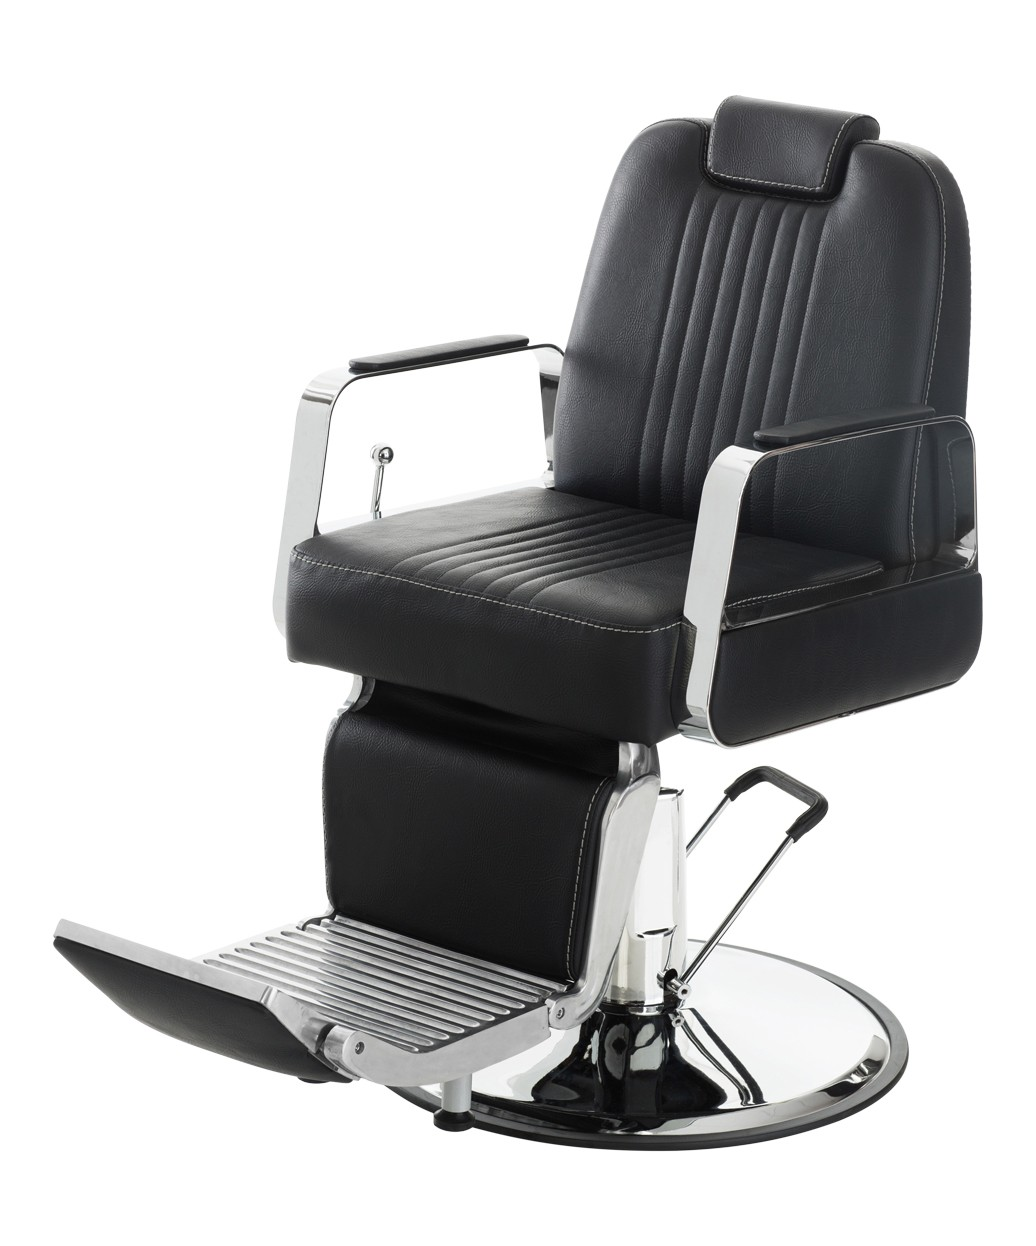 Lenox Professional Adjustable Barber Chair with Headrest